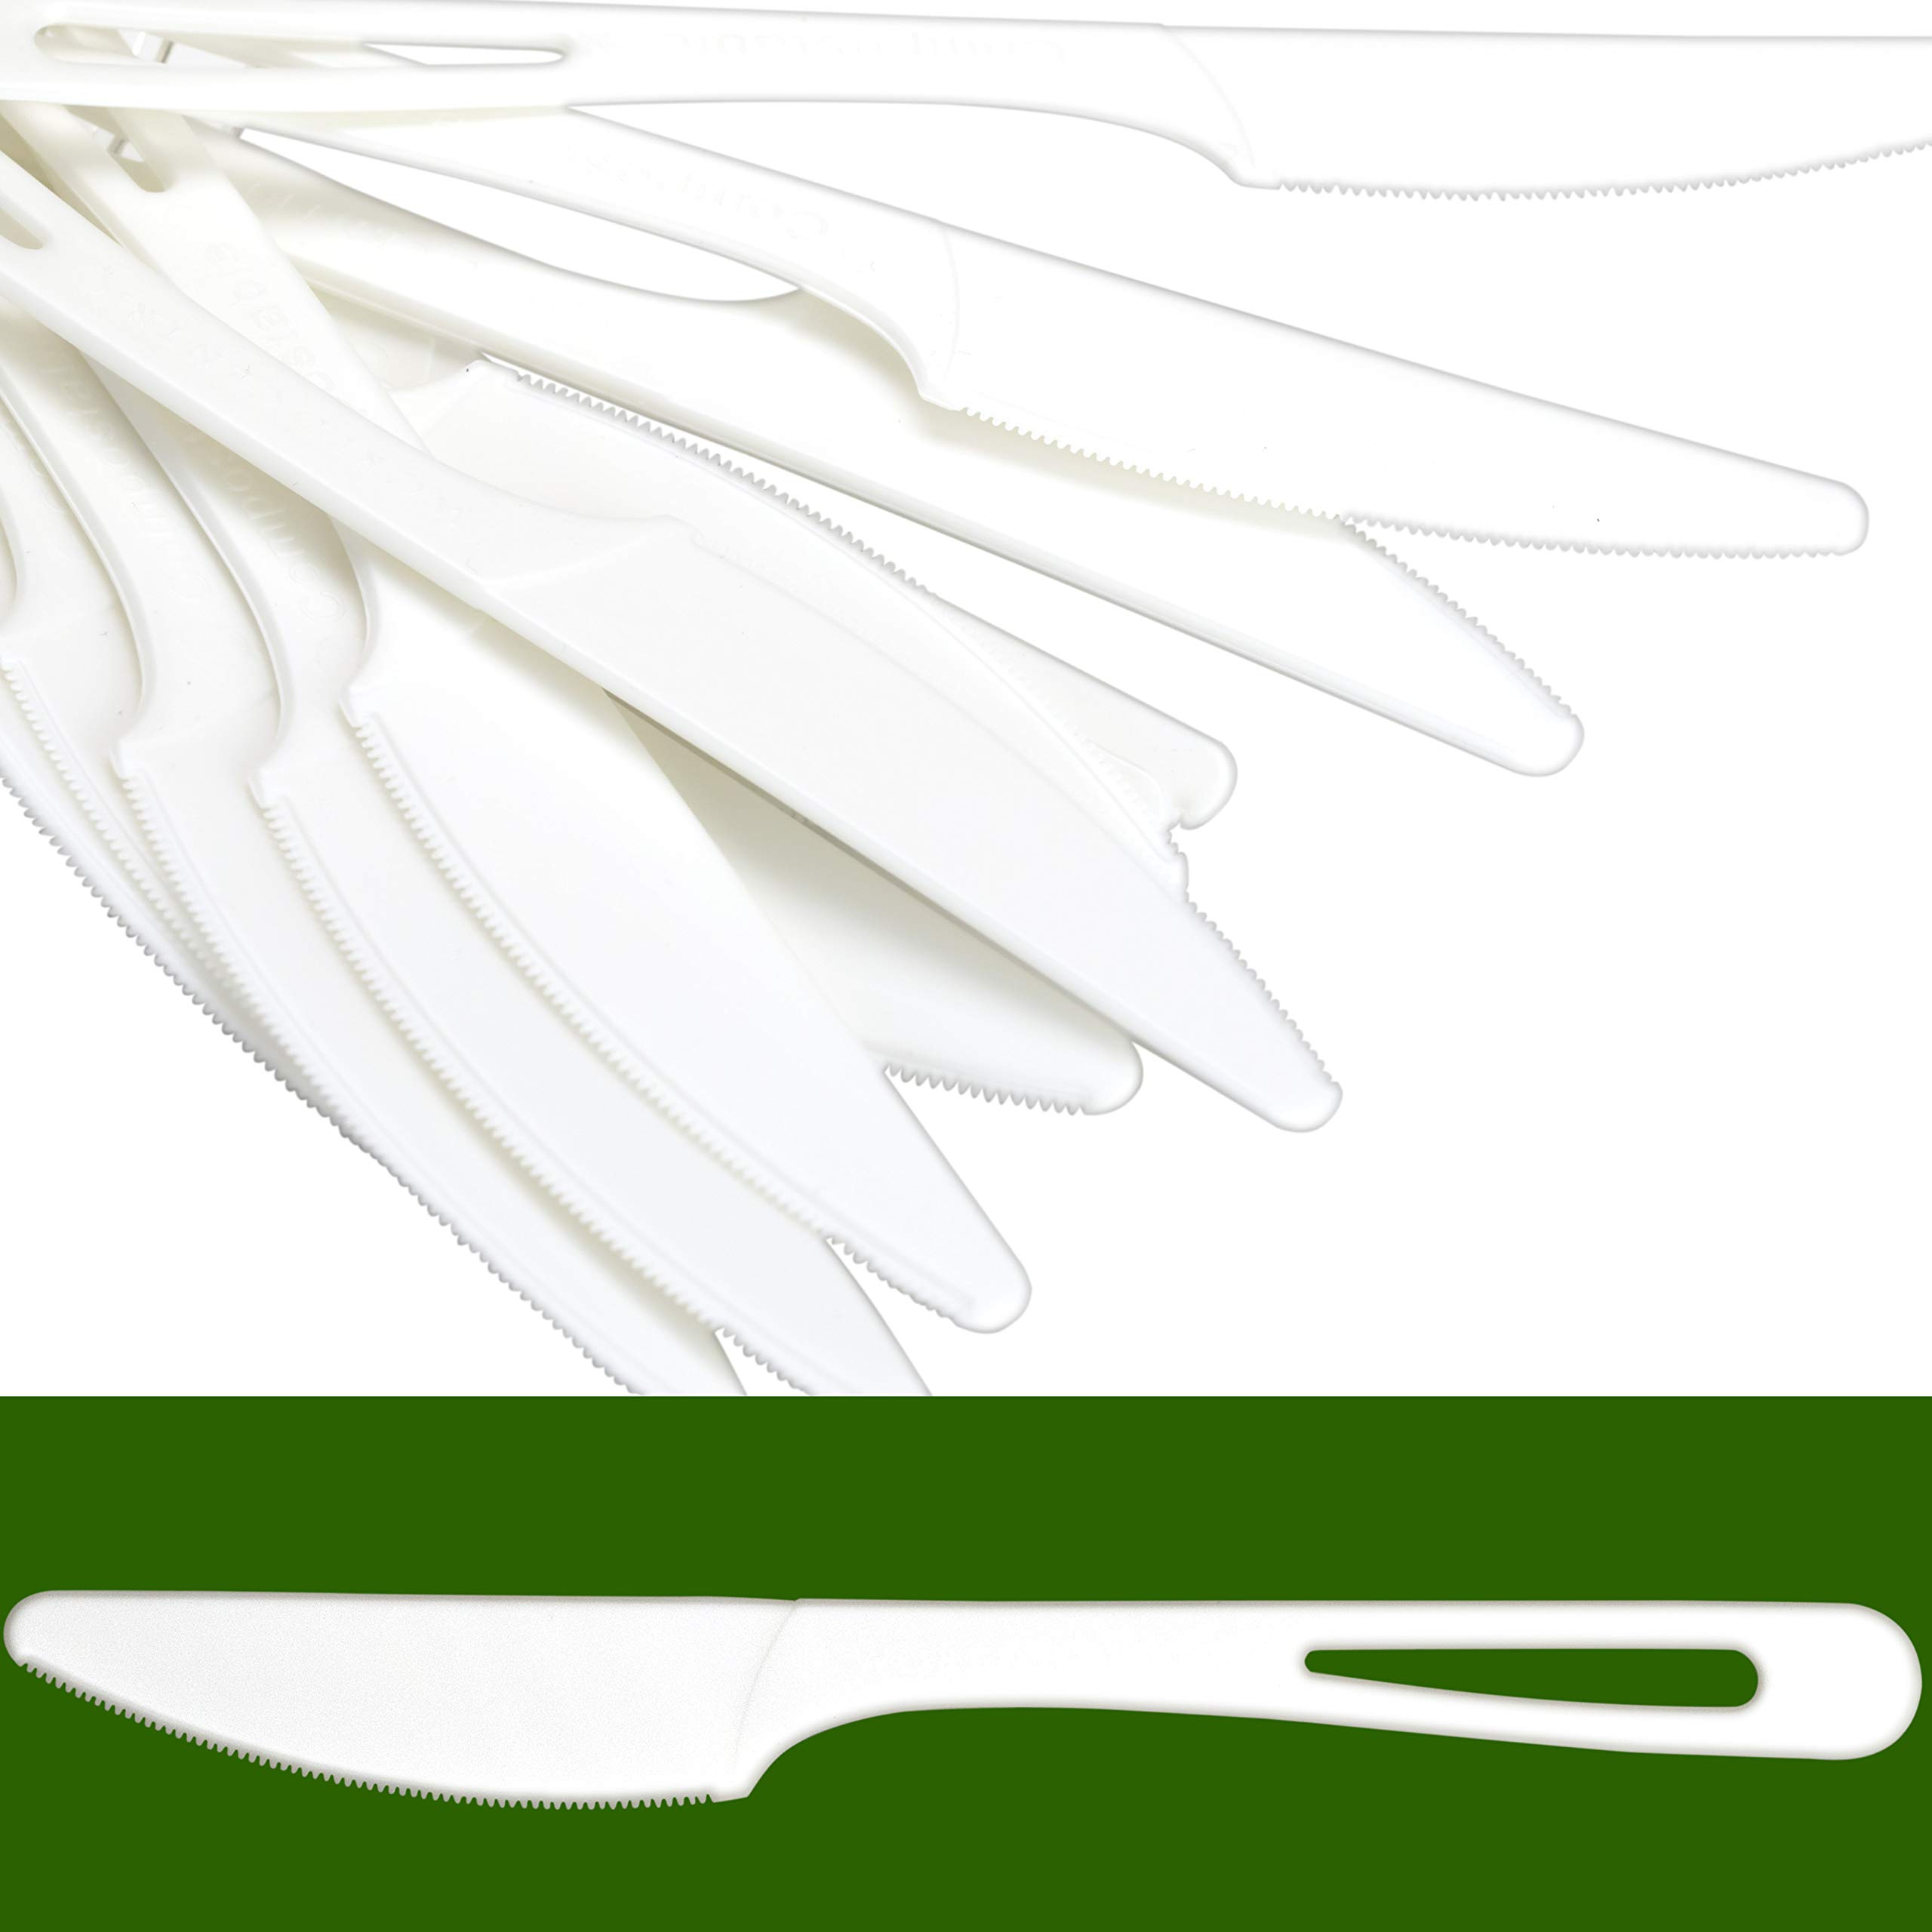 Biodegradable Knives Made From Non-GMO Plant-Based Plastic 100 Pack. Sturdy Utensils are Certified Compostable, Disposable, Eco-Friendly Cutlery With No Wood Taste. Safe for Hot and Cold Foods!